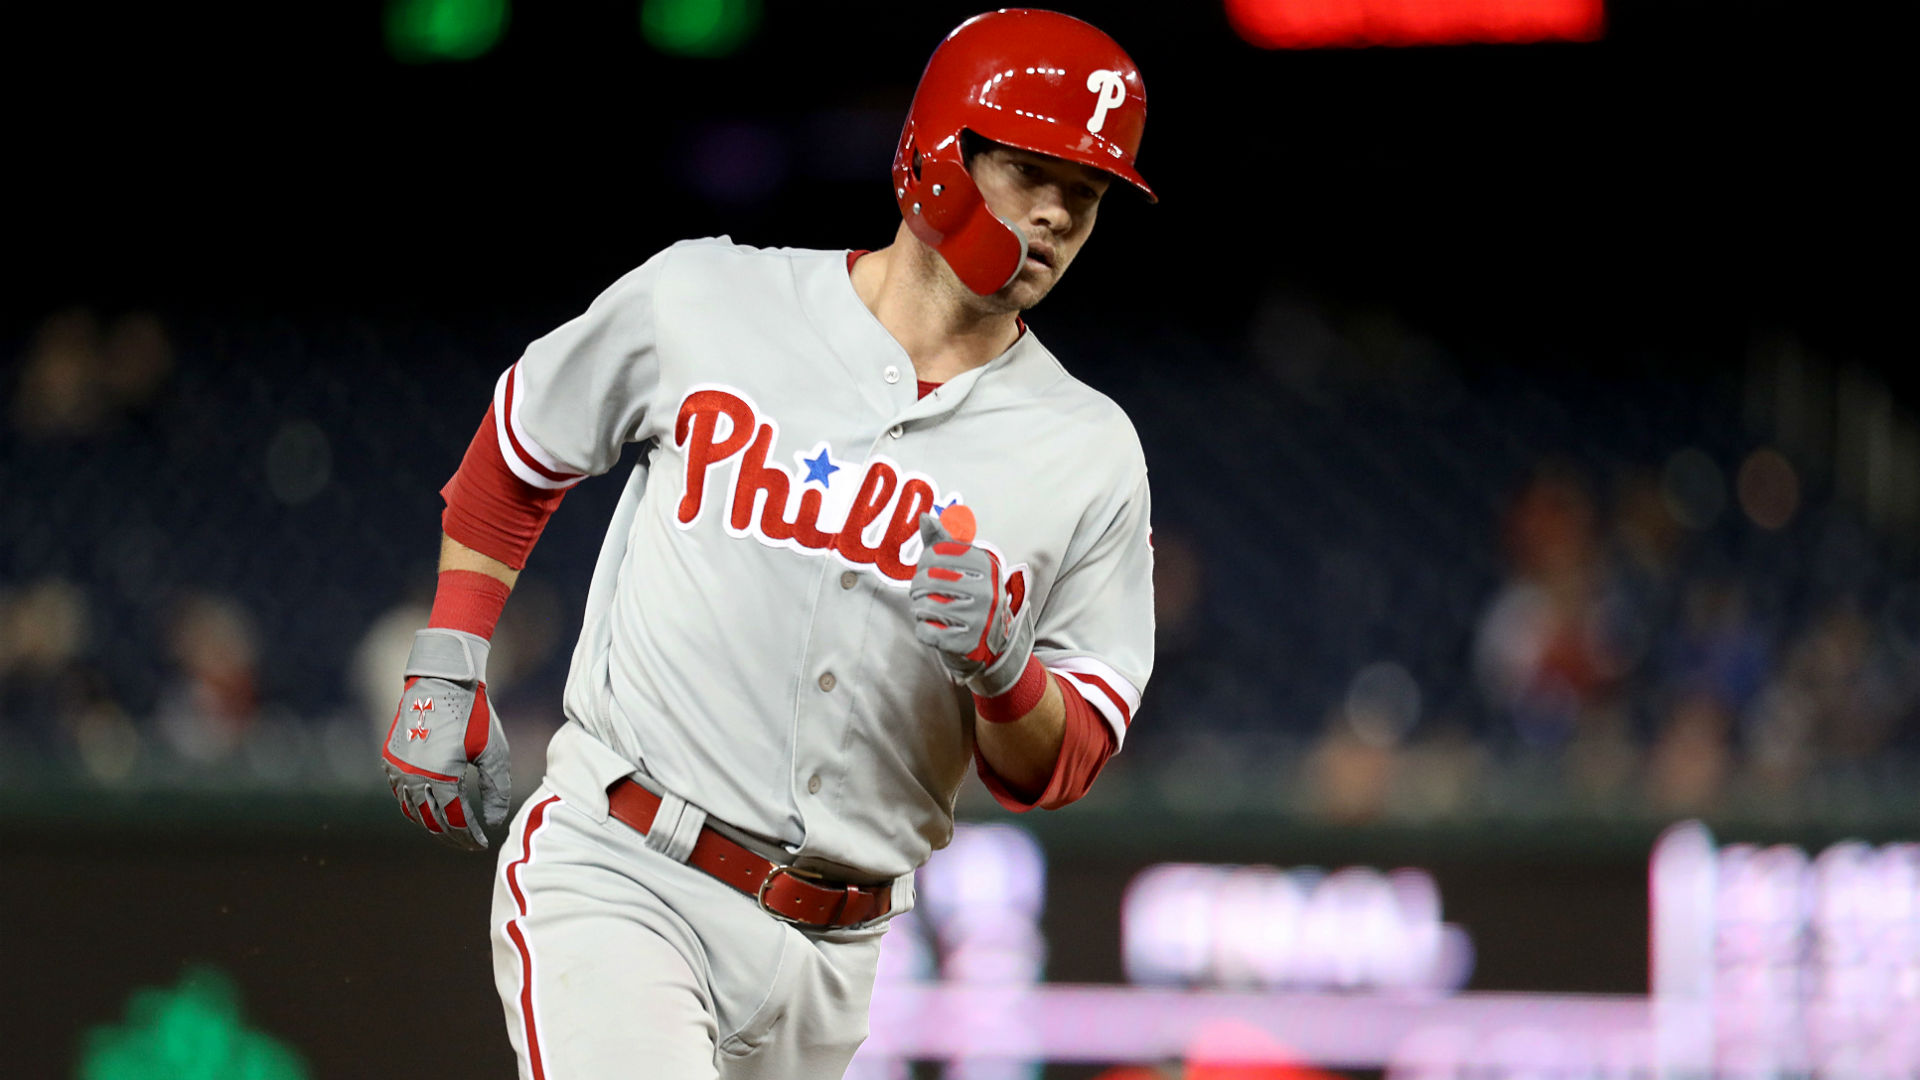 Watch: Phils' Andrew Knapp crushes walkoff, upper-deck home run in 13th